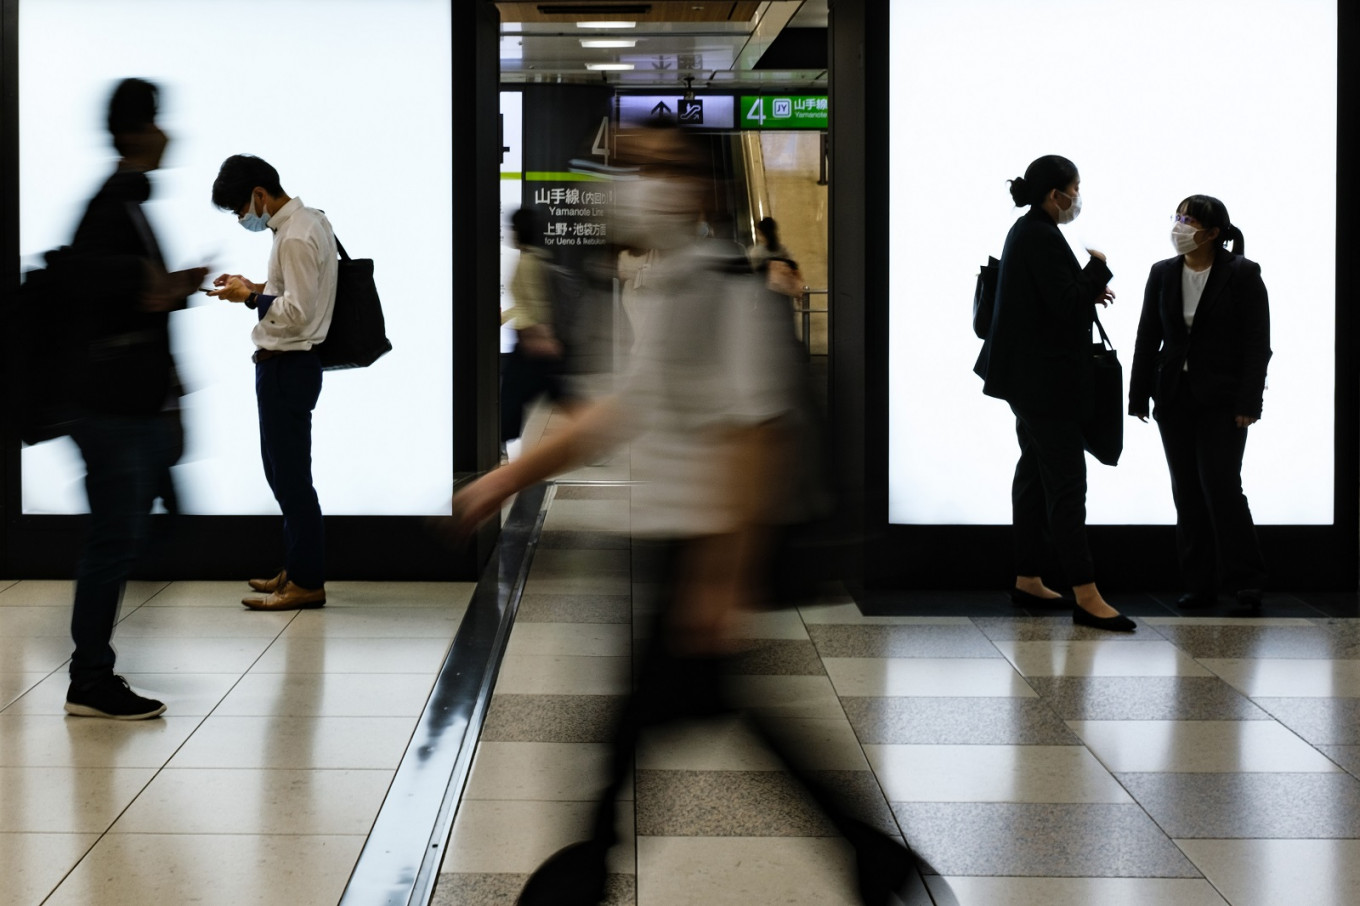 Tokyo seeks travel curbs as new infections tops 100 for 3rd day, says NHK